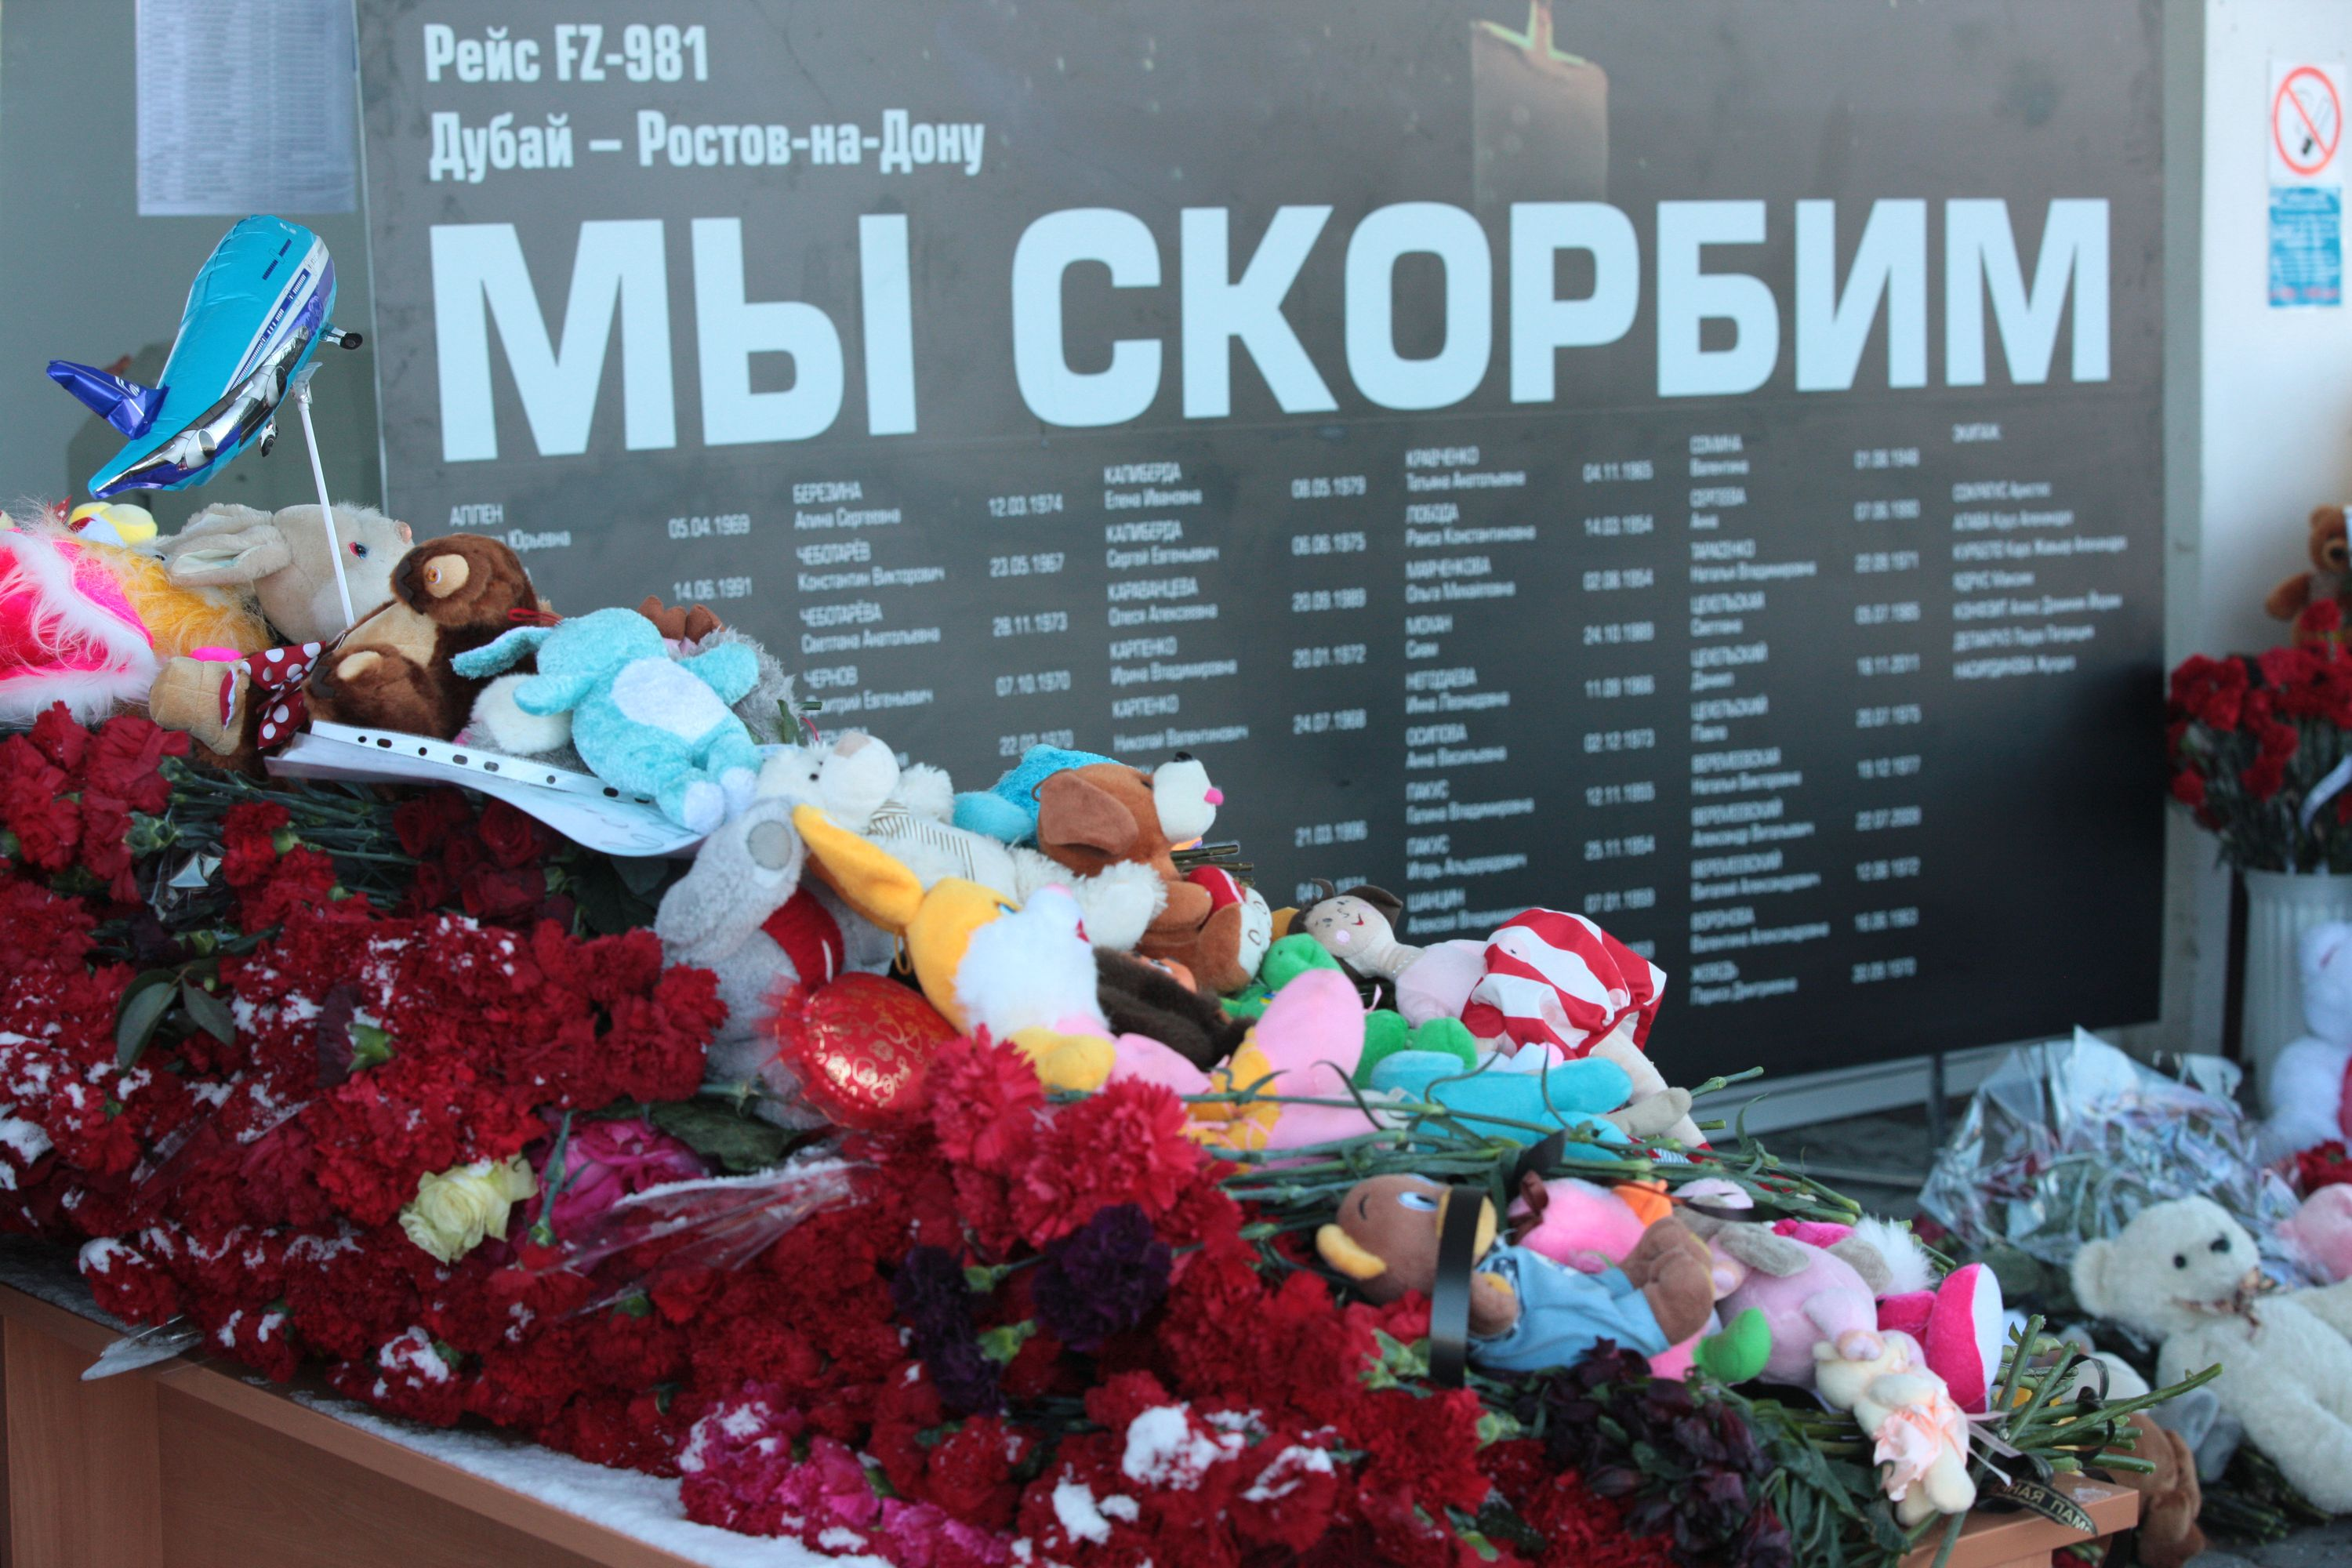 File:Memorial at Rostov-on-Don Airport for victims of